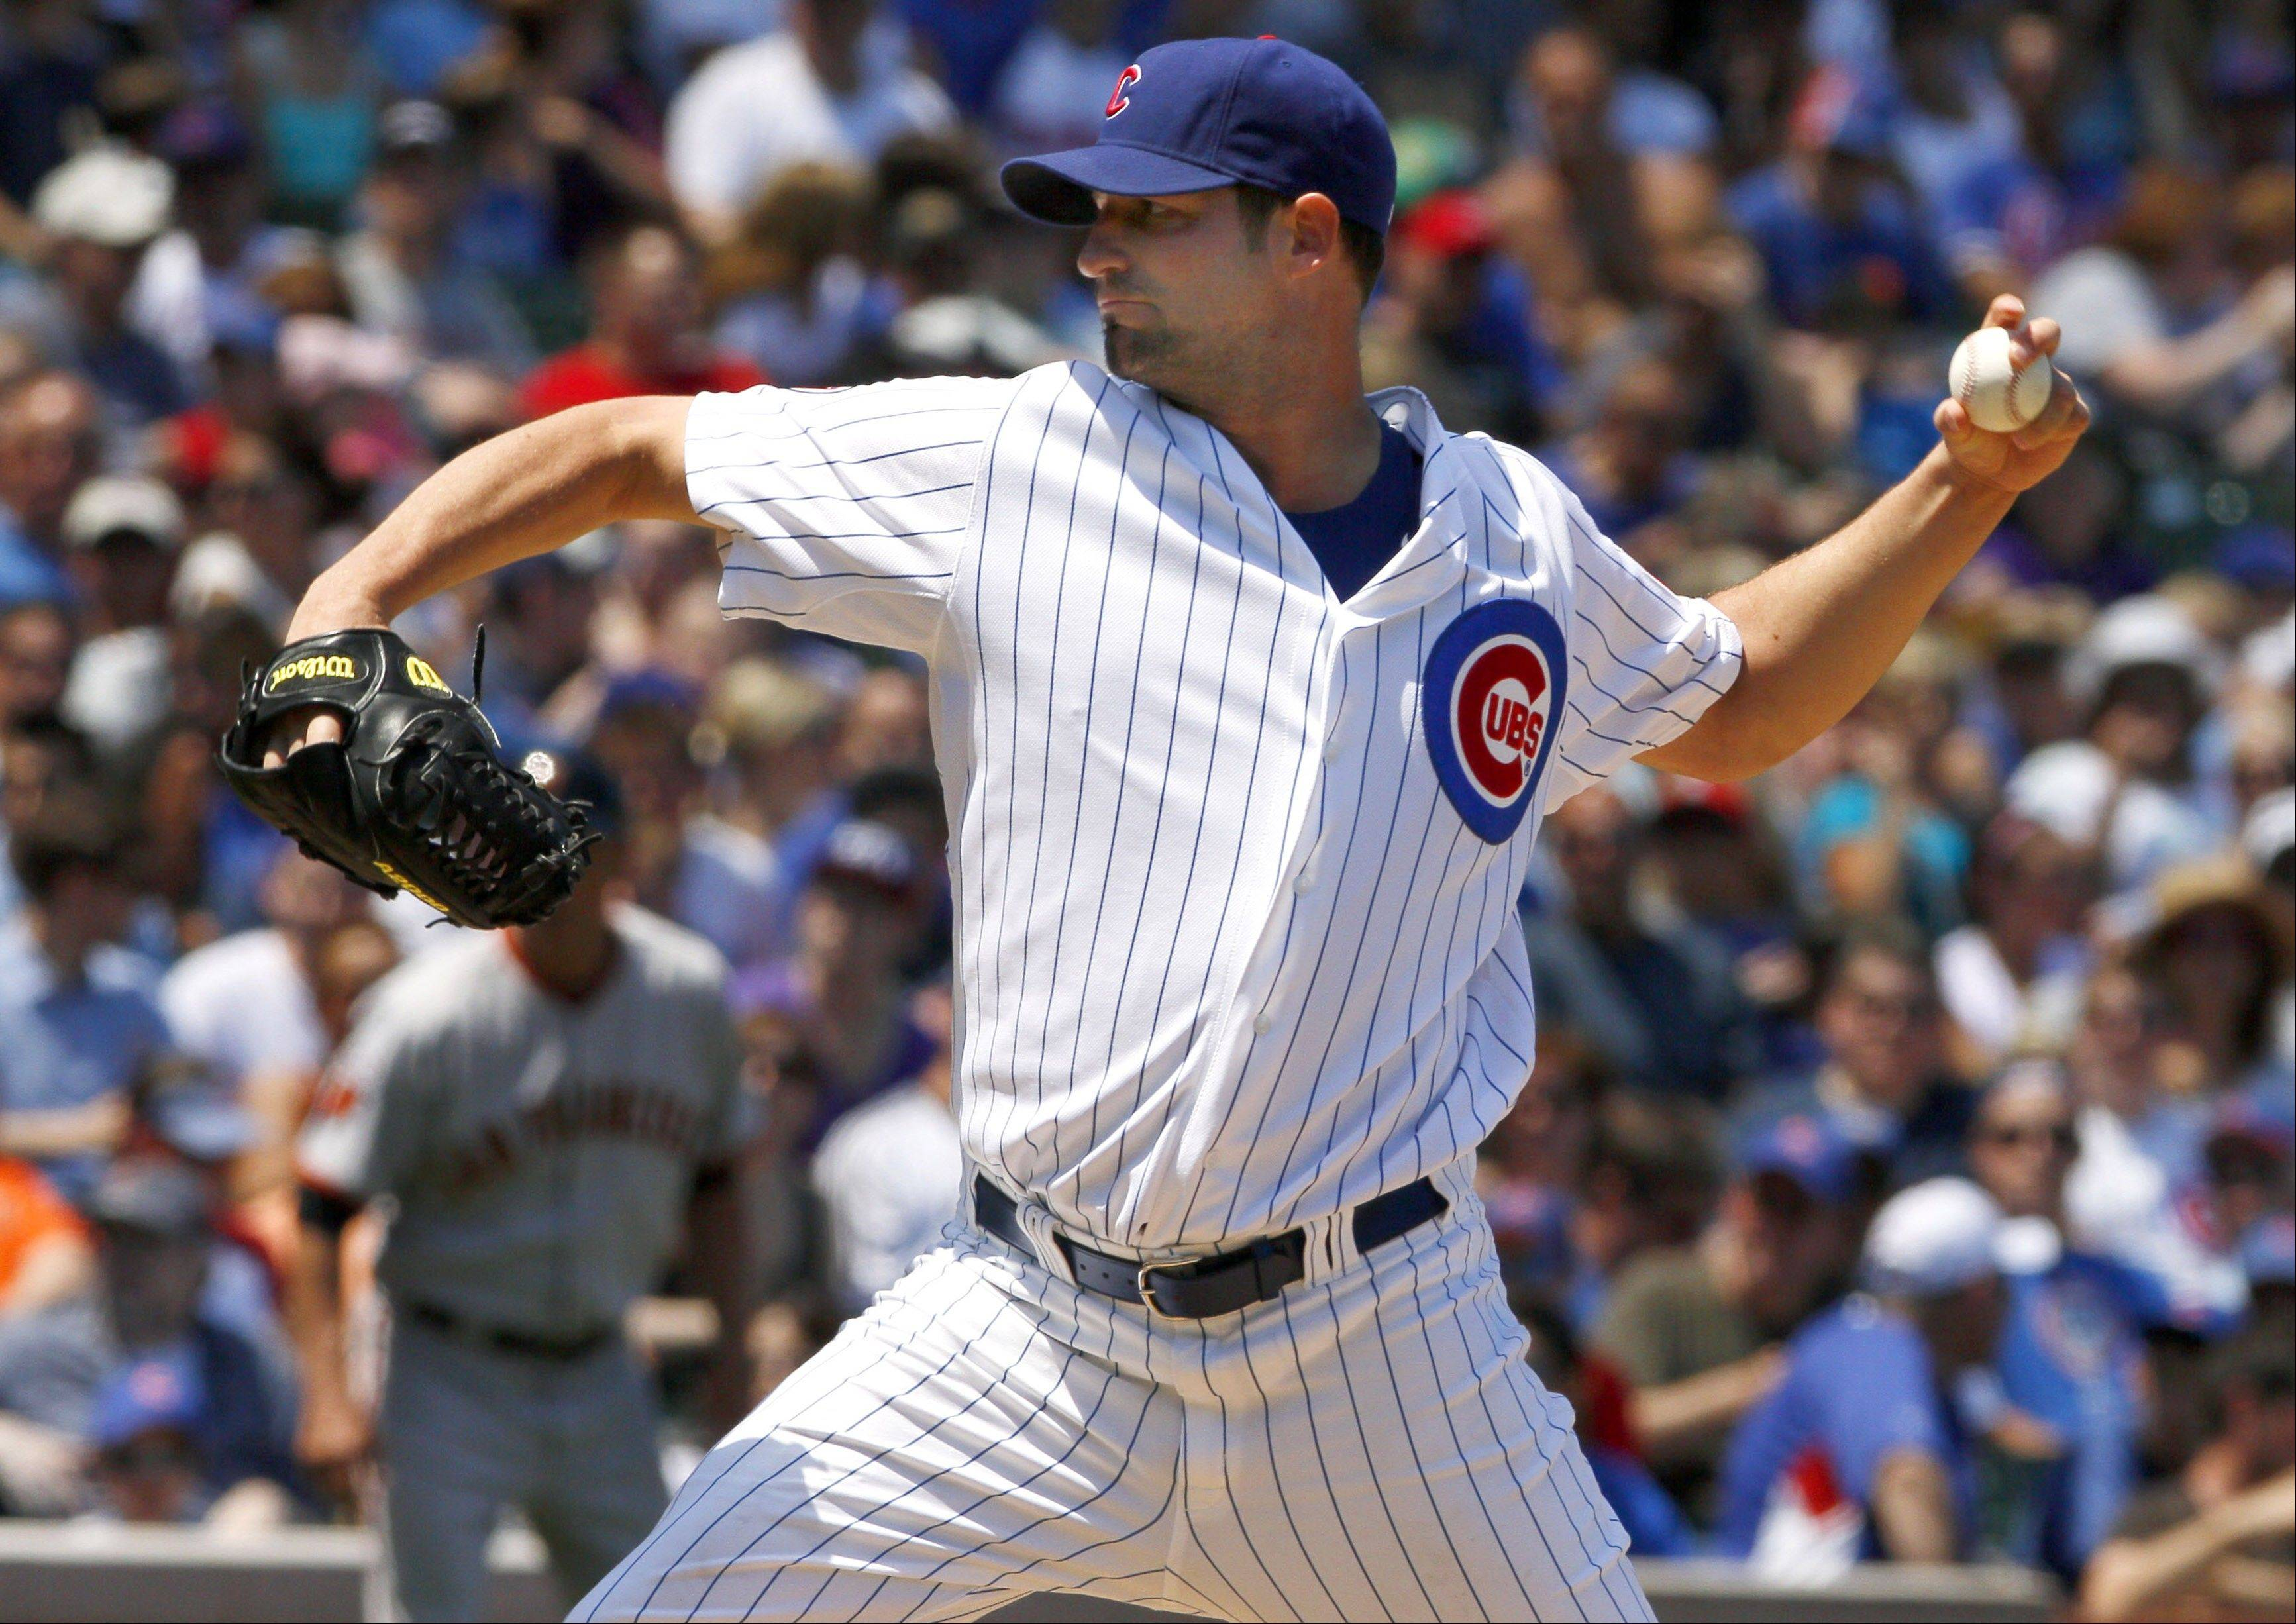 Cubs starter Doug Davis allowed 10 runs on 12 hits in 4⅓ innings as he fell to 1-7 with the loss in the first game of Tuesday's double dip to the Giants at Wrigley Field.